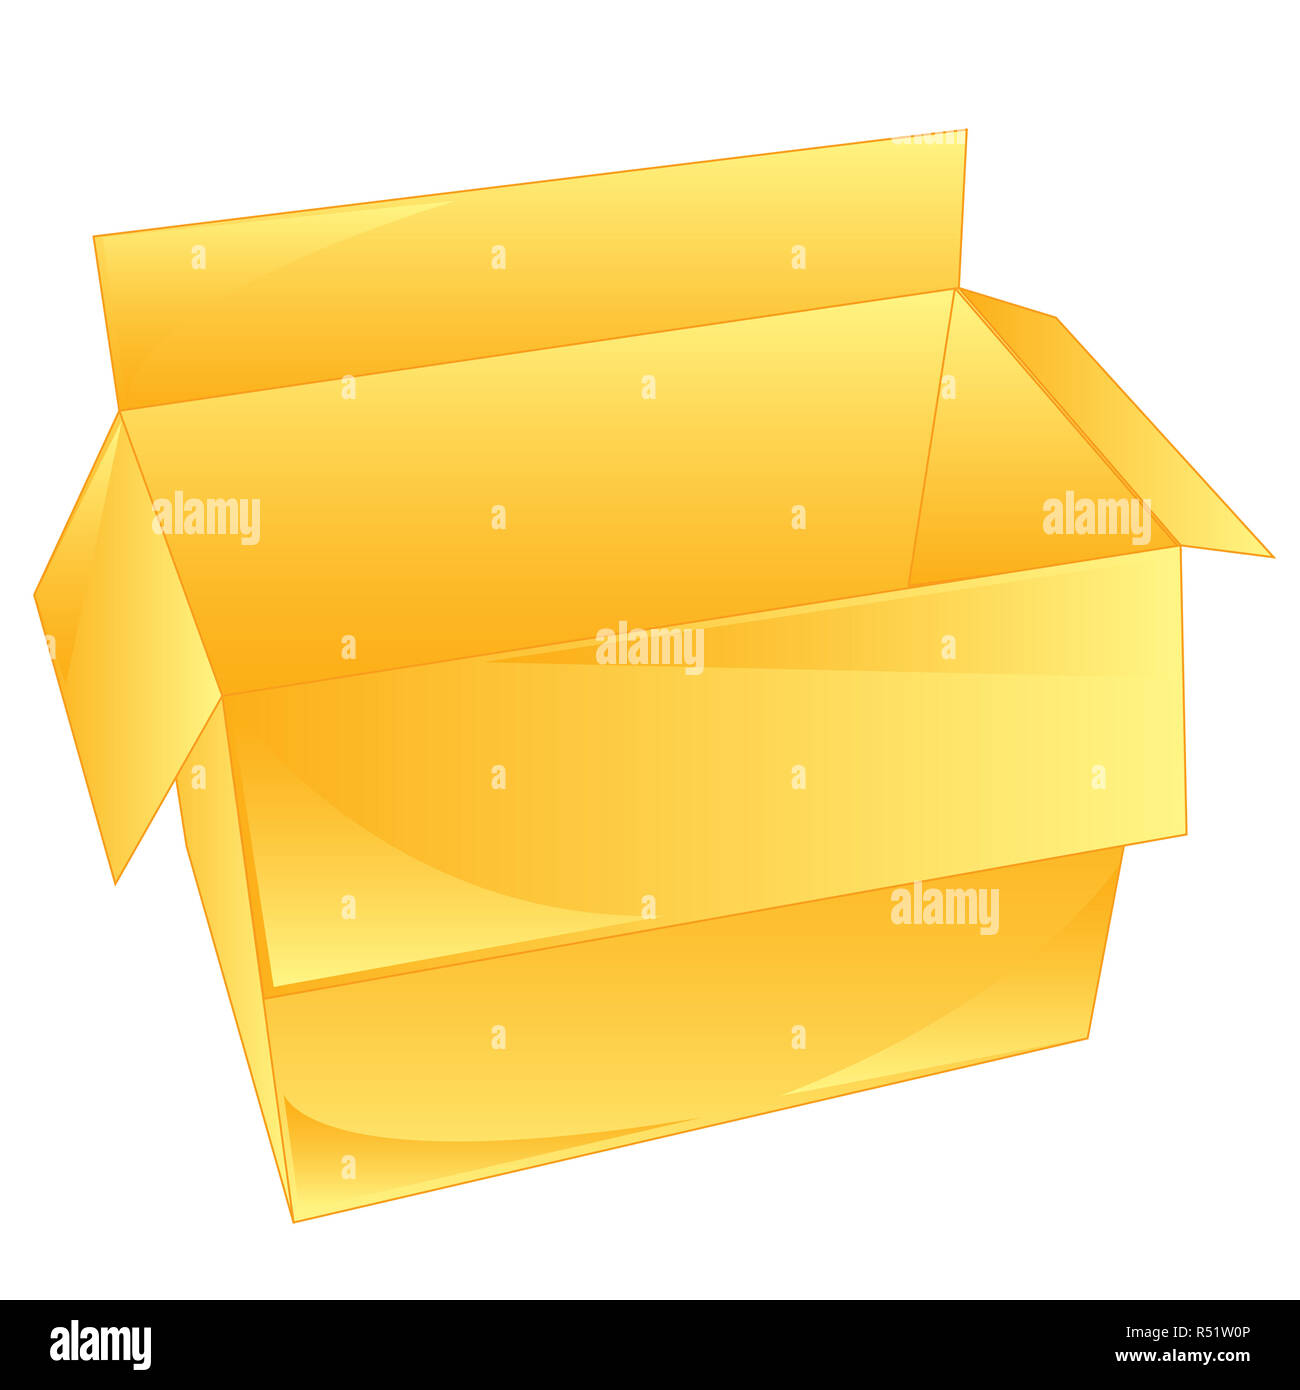 Carton Box - Stock Image